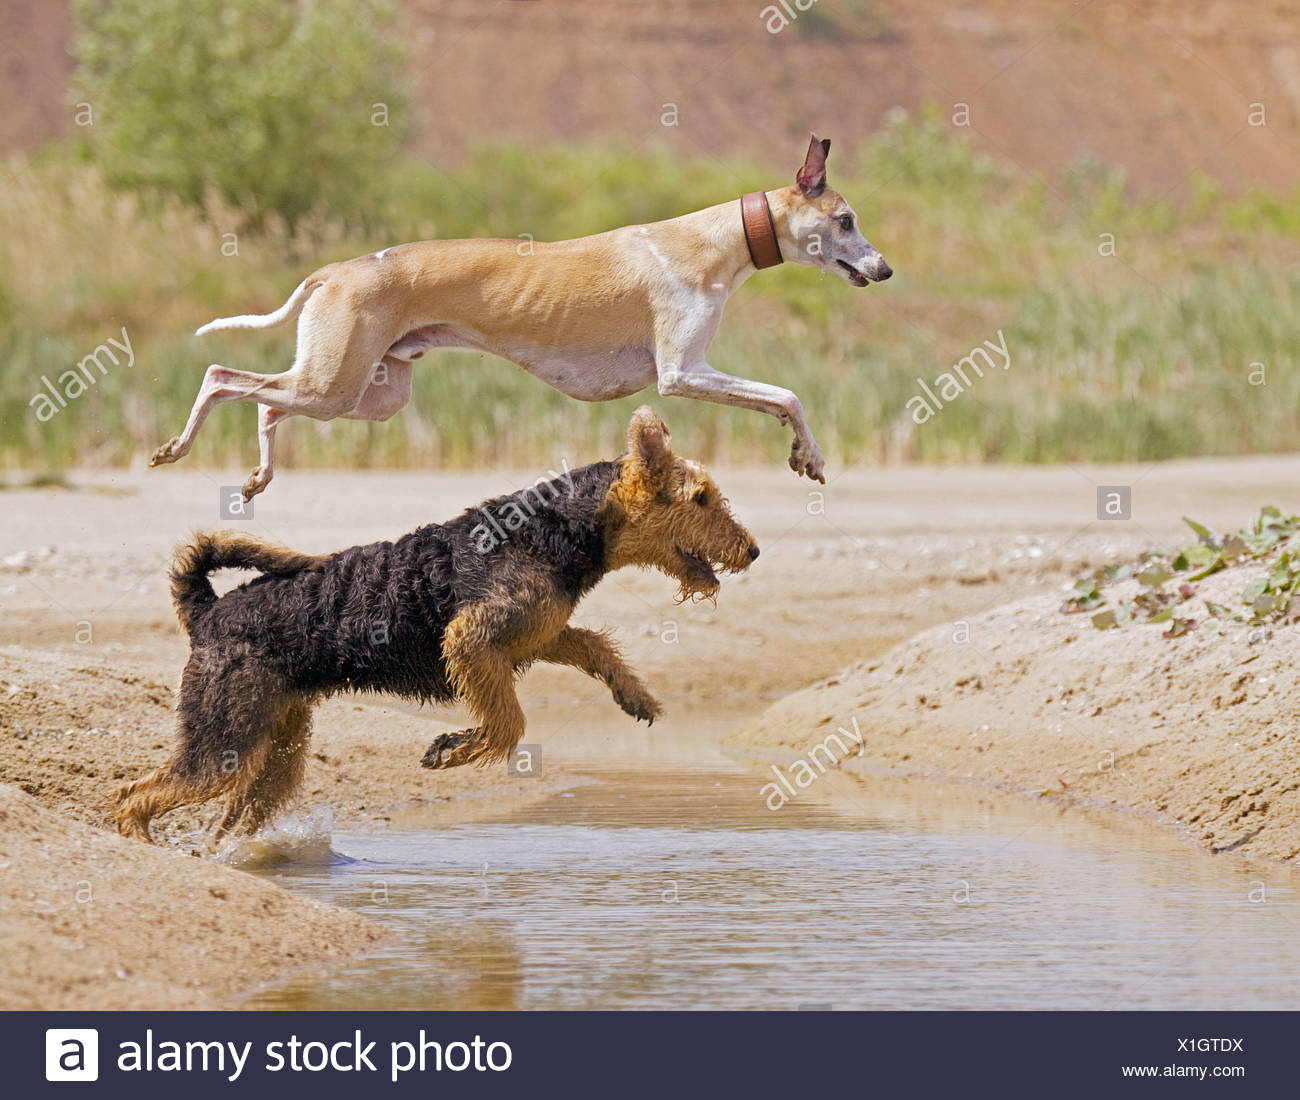 Airedale Terrier Whippet dog jumping over water Stock Photo